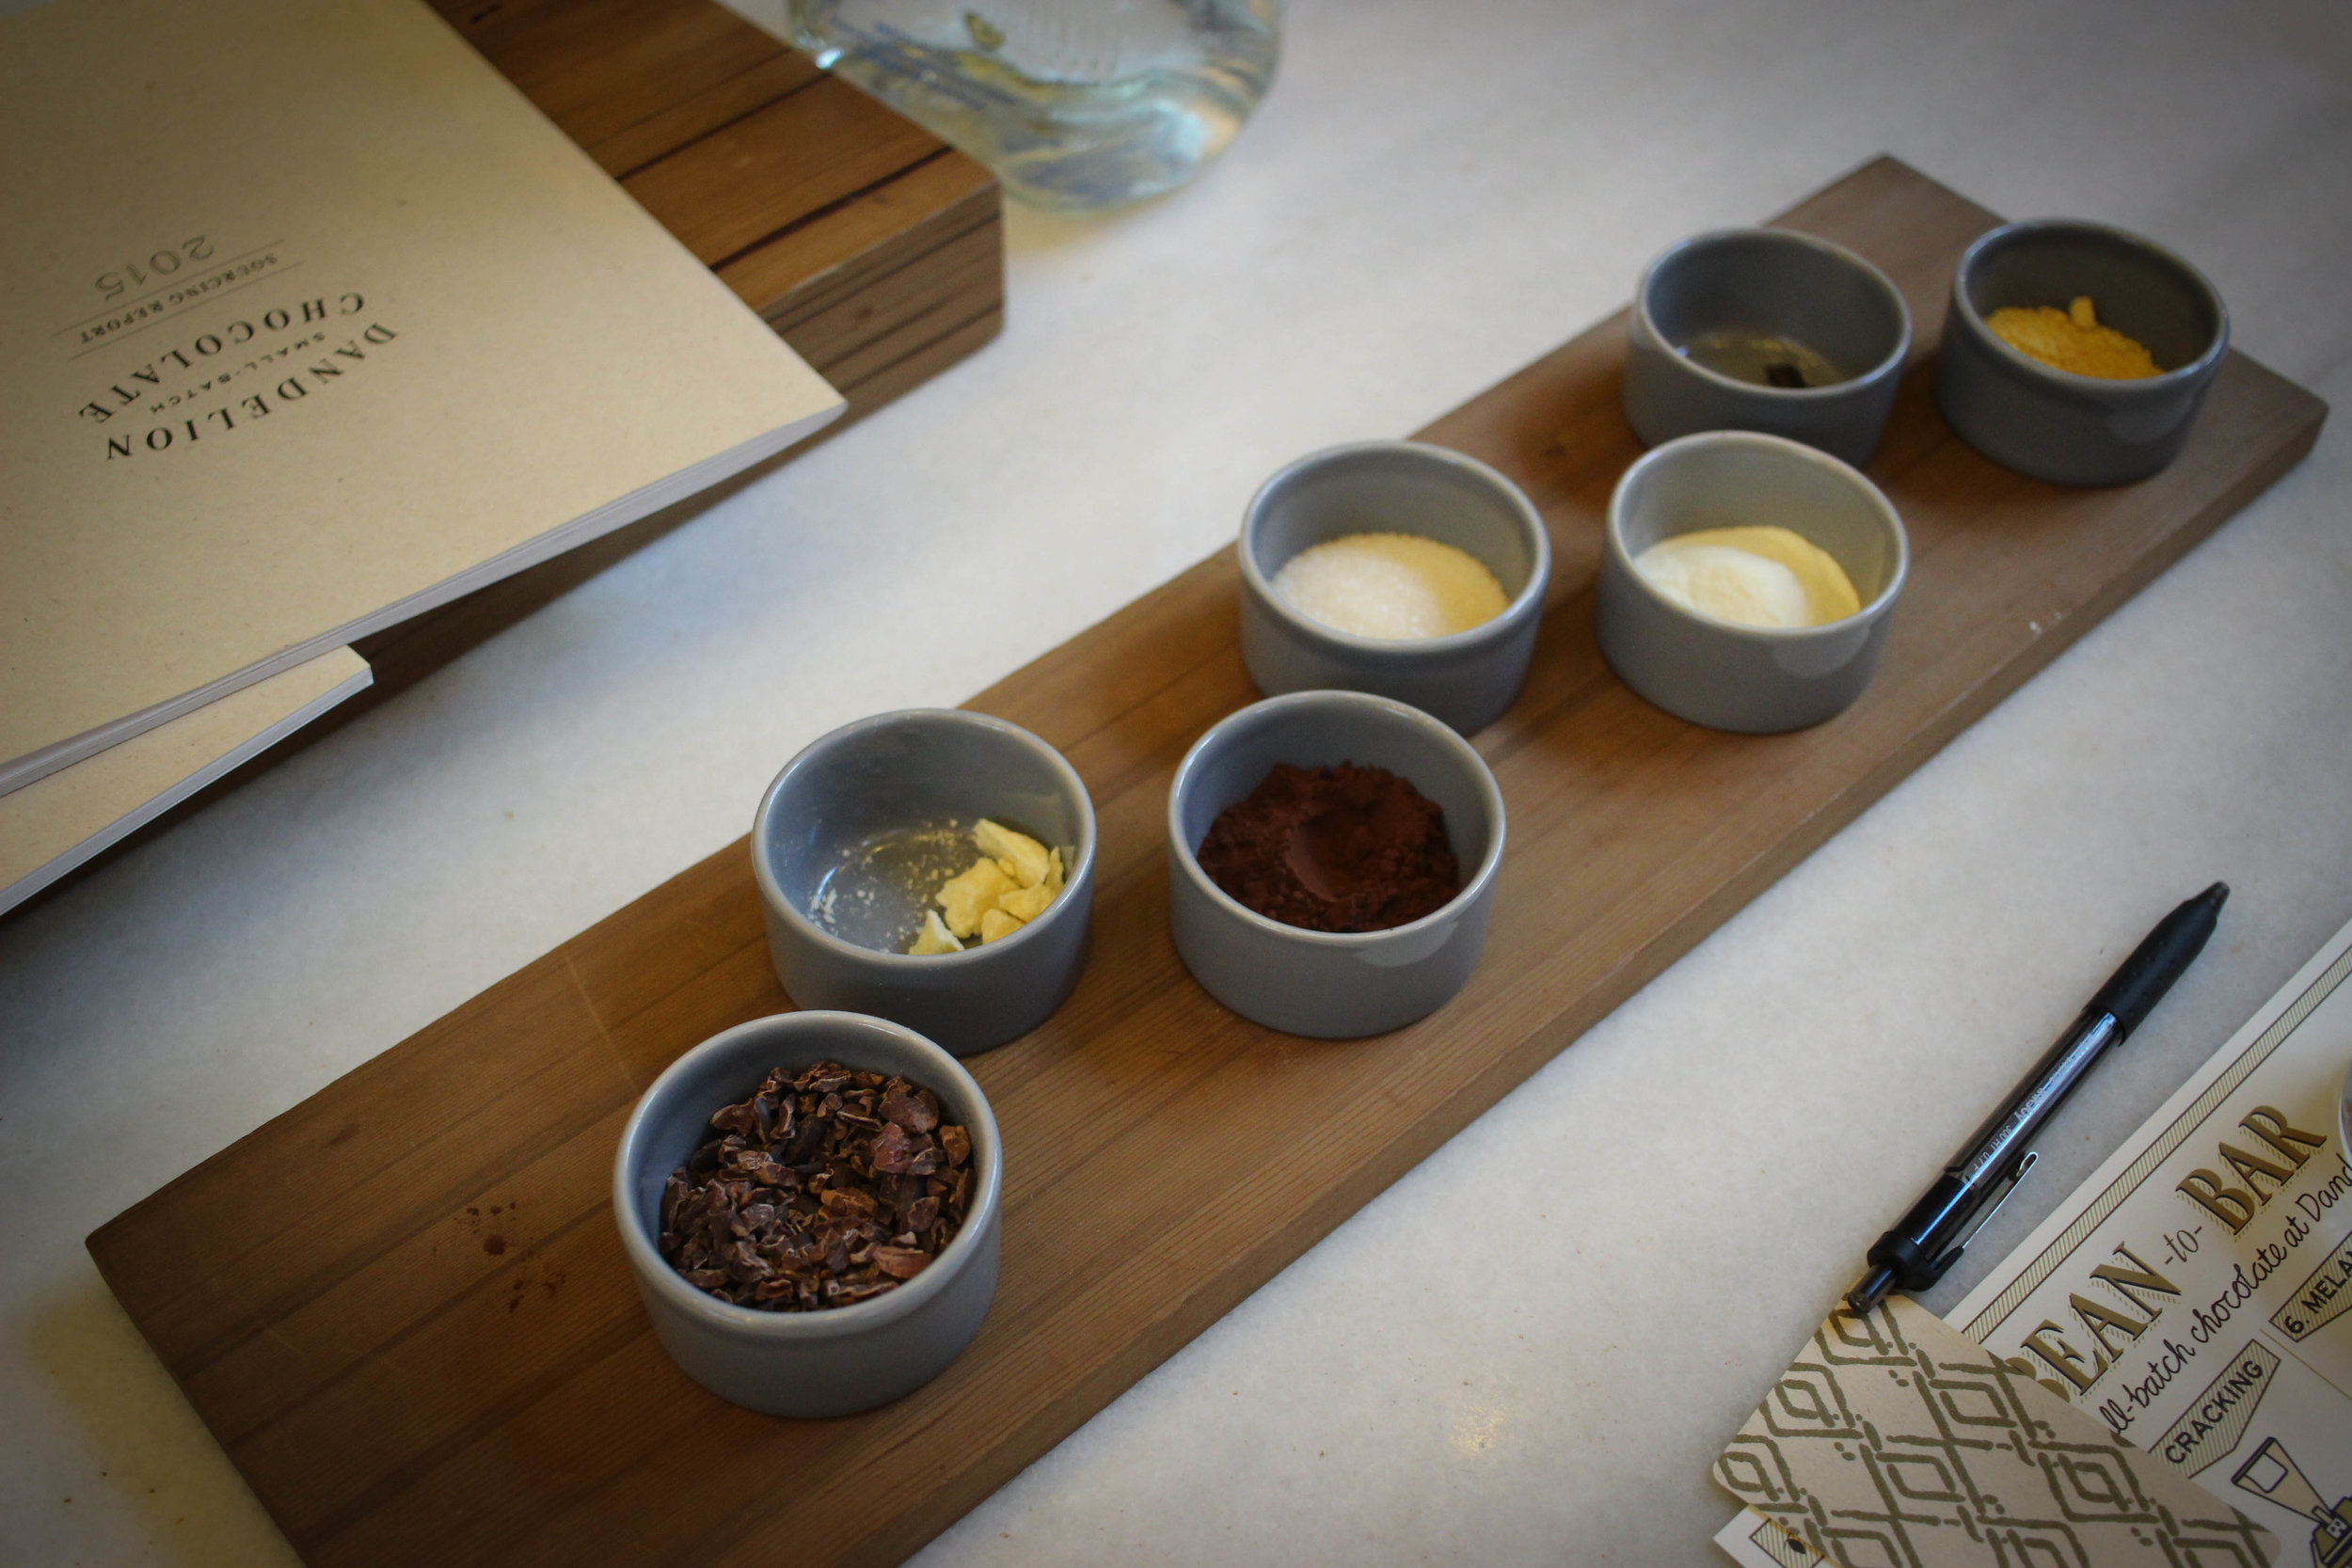 These are the typical ingredients that you will find in various different types of a chocolate bars: nibs, cocoa butter, soy lecithin, cocoa powder, powdered milk, sugar, and vanilla. We did a blind tasting and guessed which of these ingredients we thought was in each of the bars we tasted.